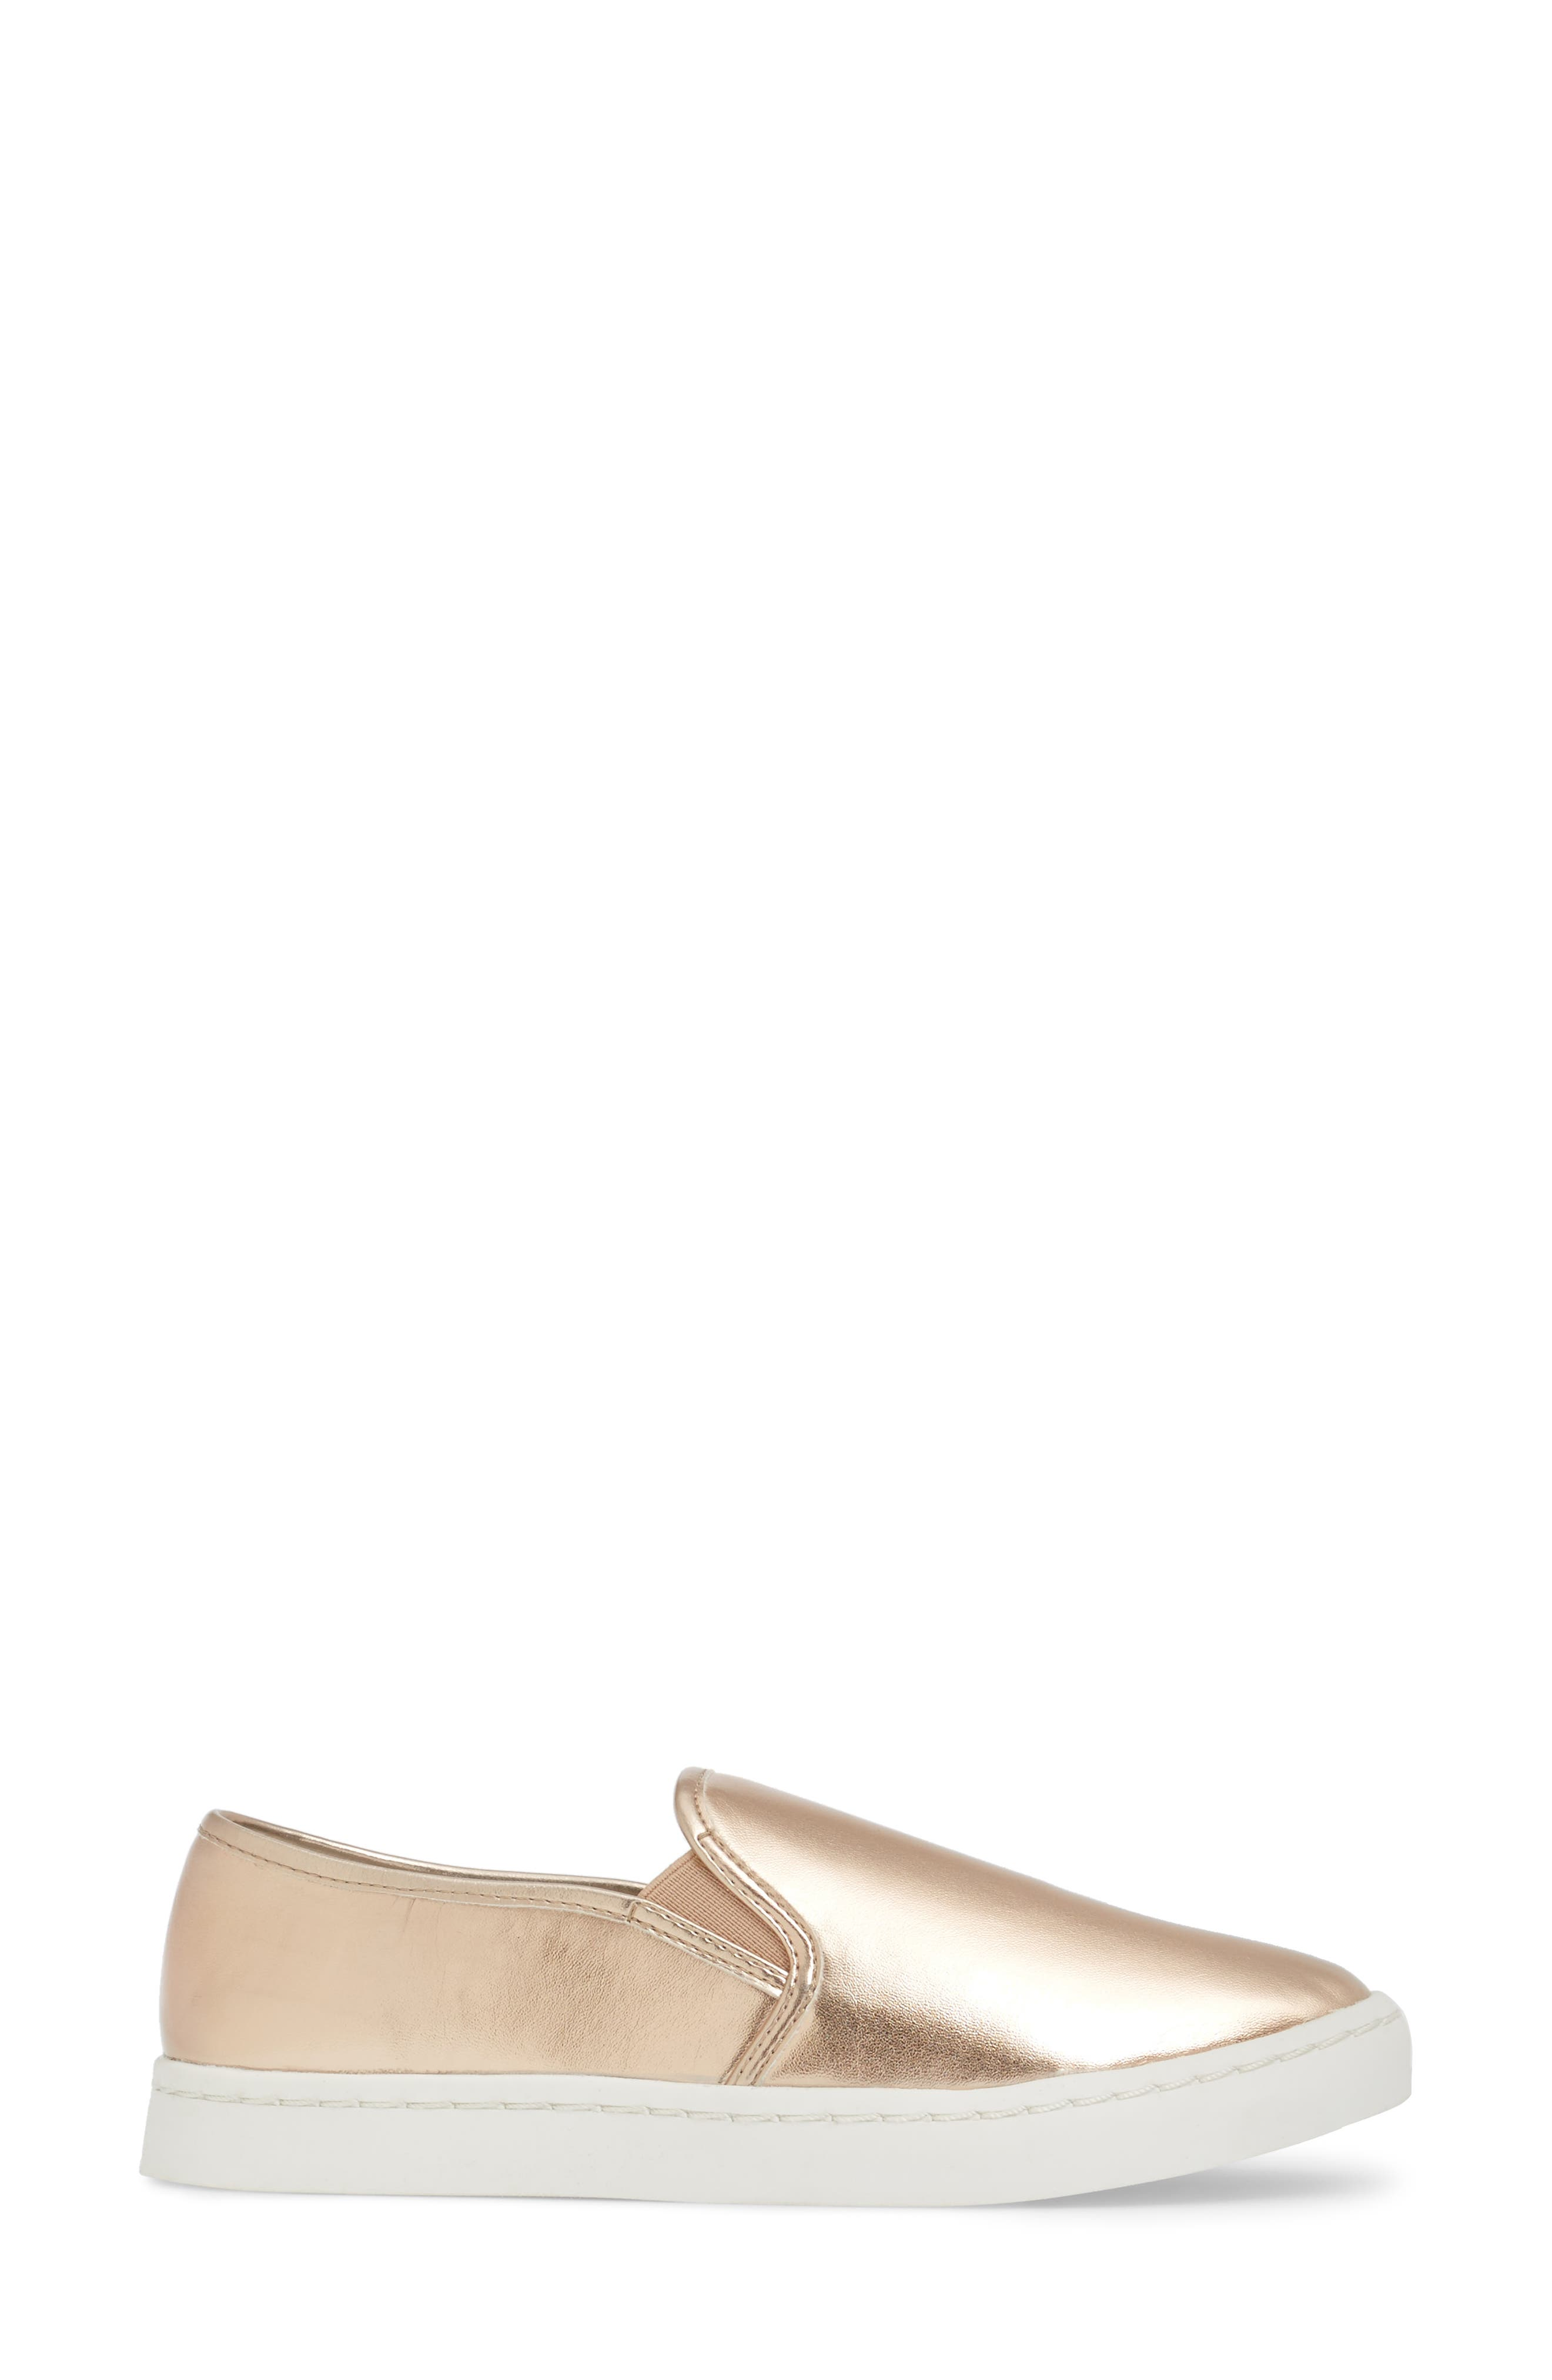 'Twiny' Slip-On Sneaker,                             Alternate thumbnail 3, color,                             Rose Gold Faux Leather